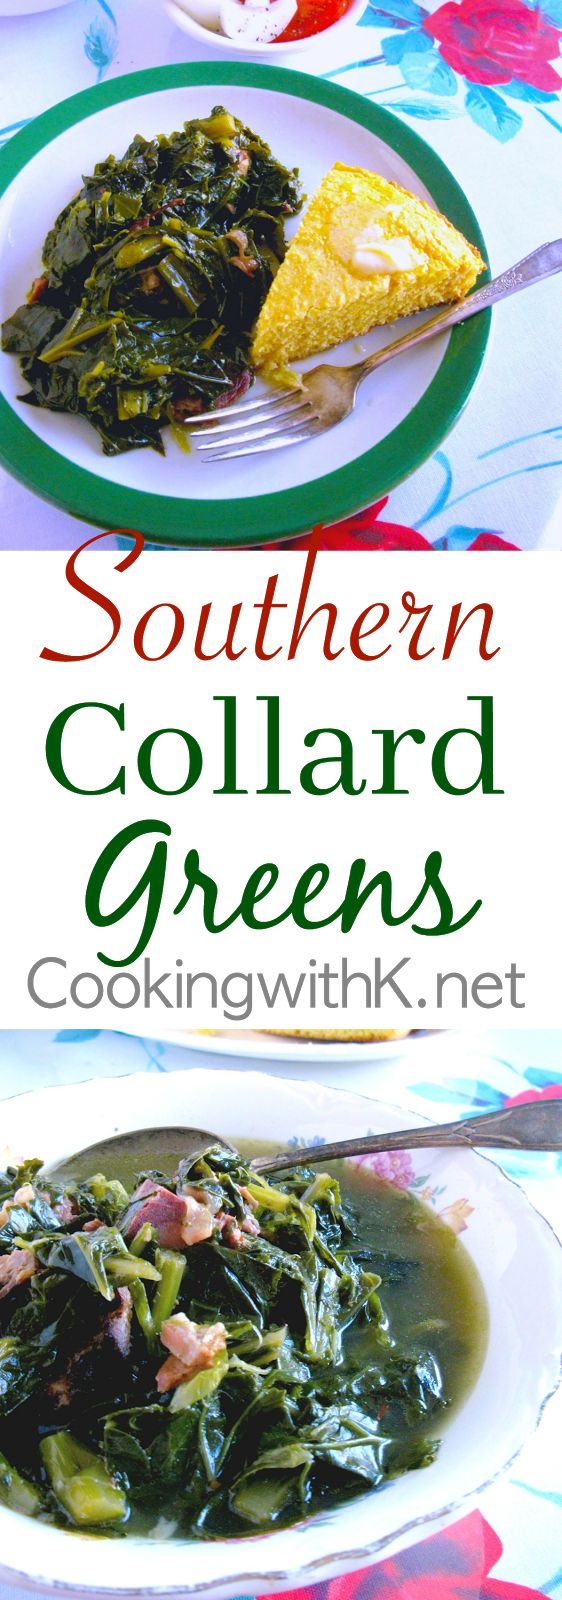 Southern Collard Greens,  a delicious Southern dish served in most households all year long, especially around the holidays.   In the south, we generally cook large amounts of greens at one time, referring to them as an ole' mess of greens.